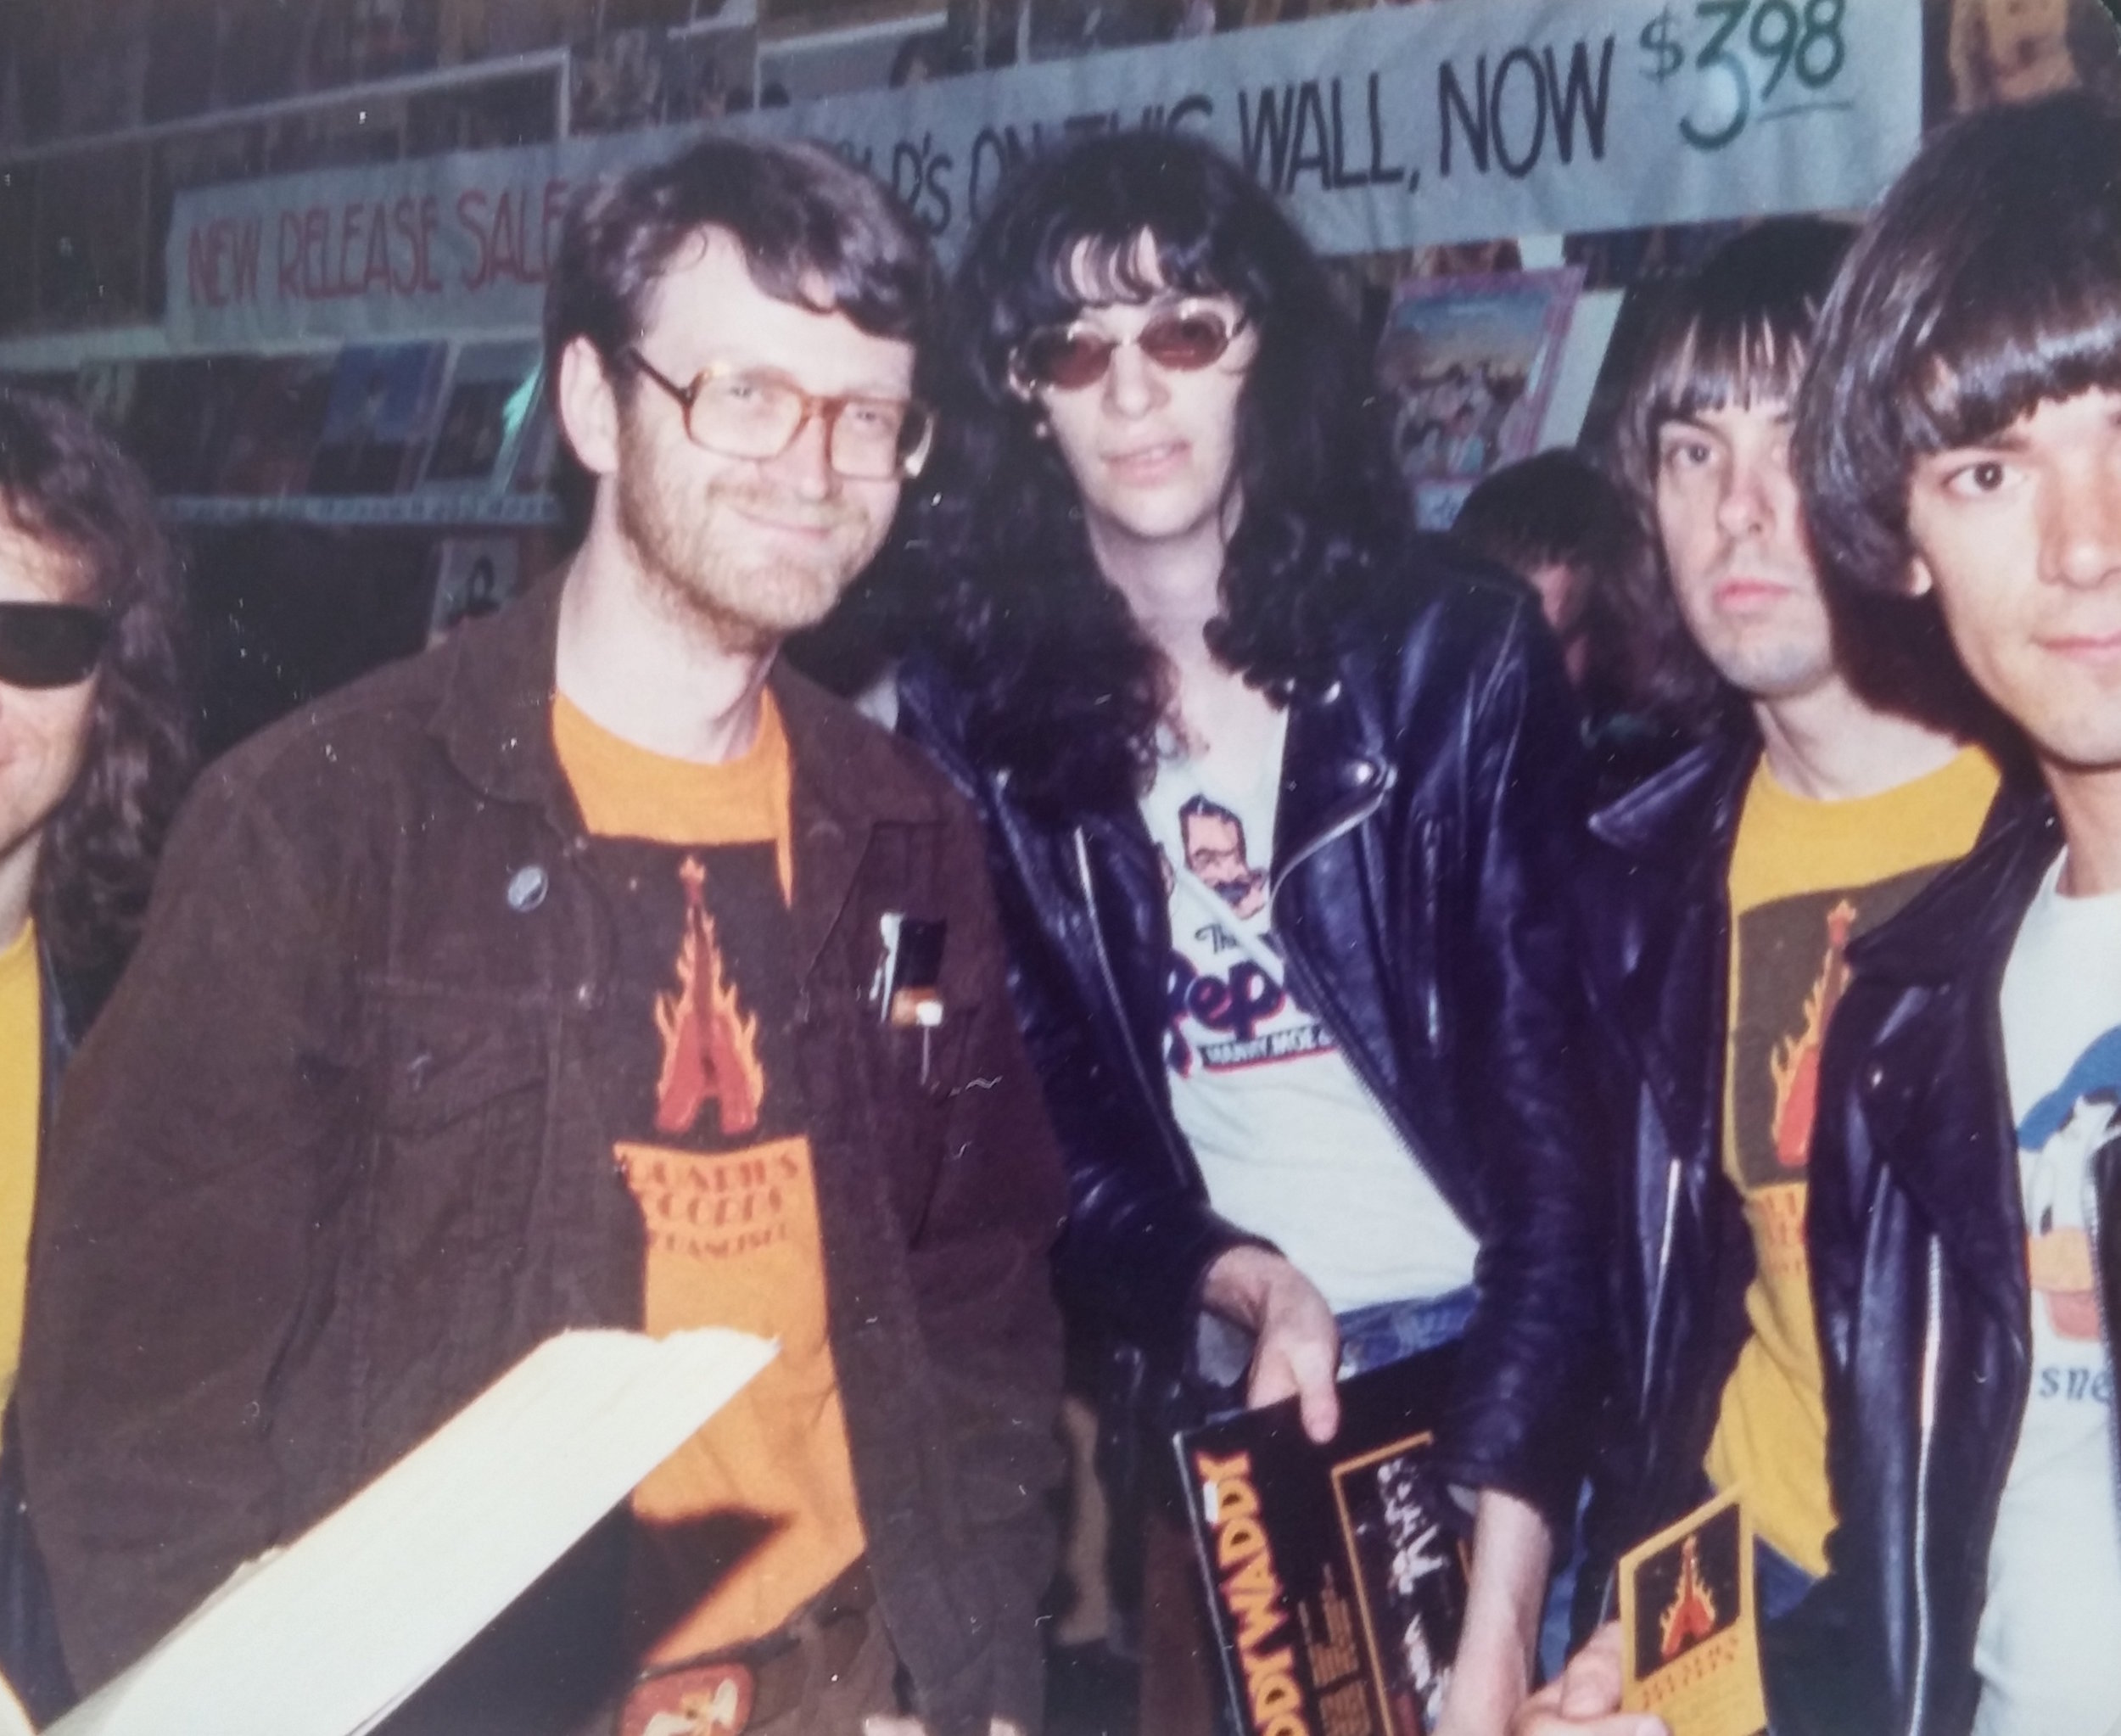 70's owner, Chris Knab, hosting a visit from The Ramones!